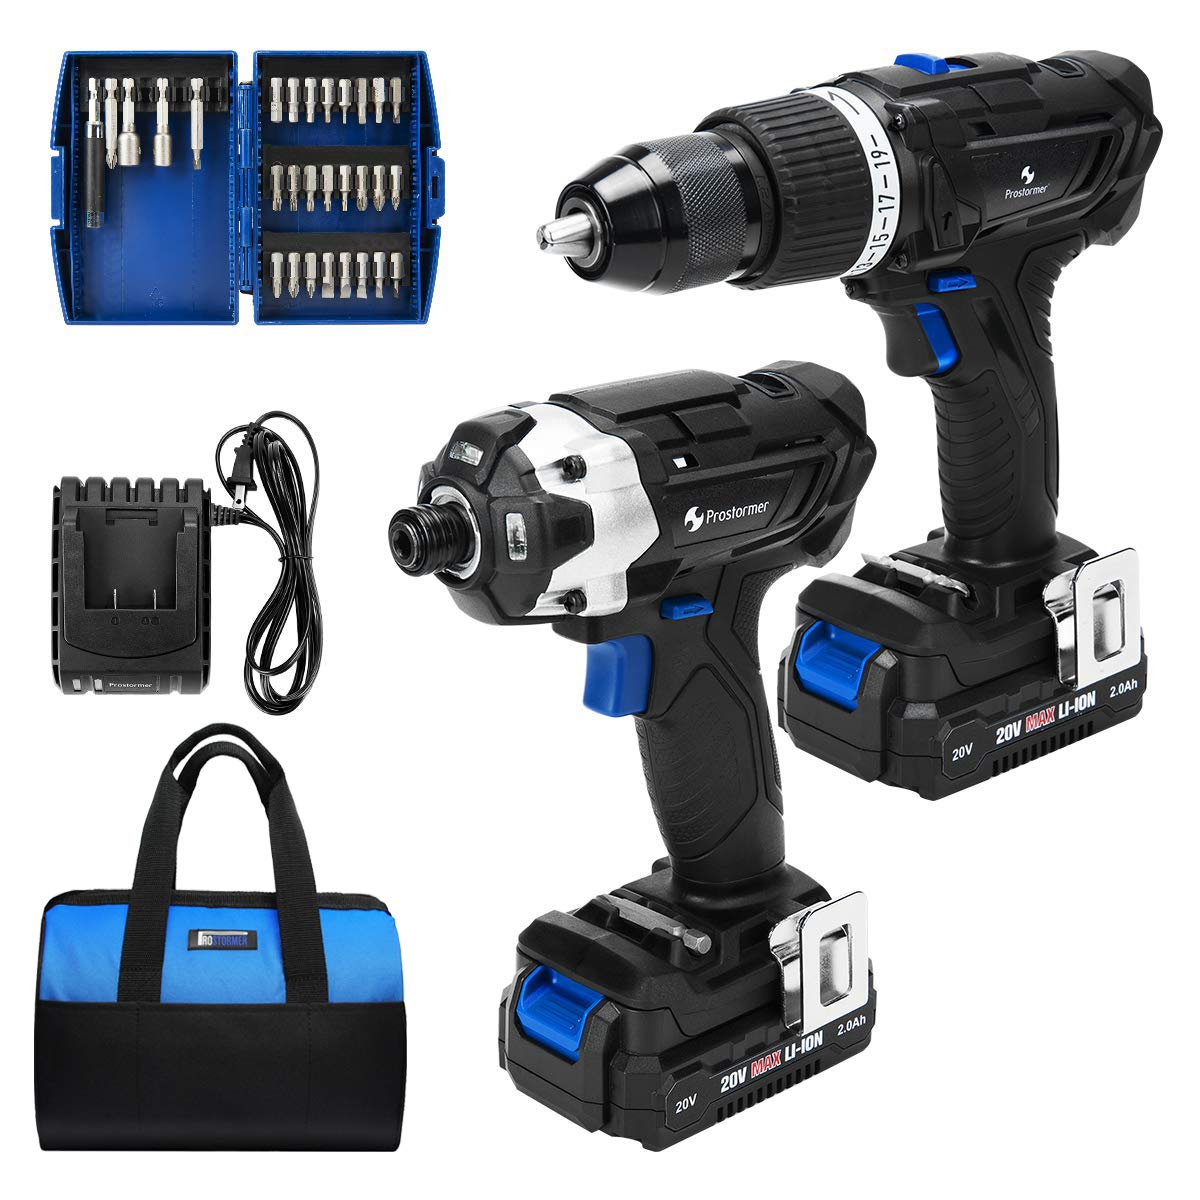 Hammer Drill and Impact Driver Combo Kit, PROSTORMER 20V Max Cordless Drill Driver/Impact Driver with 2Pcs 2.0Ah Lithium-Ion Batteries, Charger Kit, 29pcs Accessories and Tool Bag by Prostormer